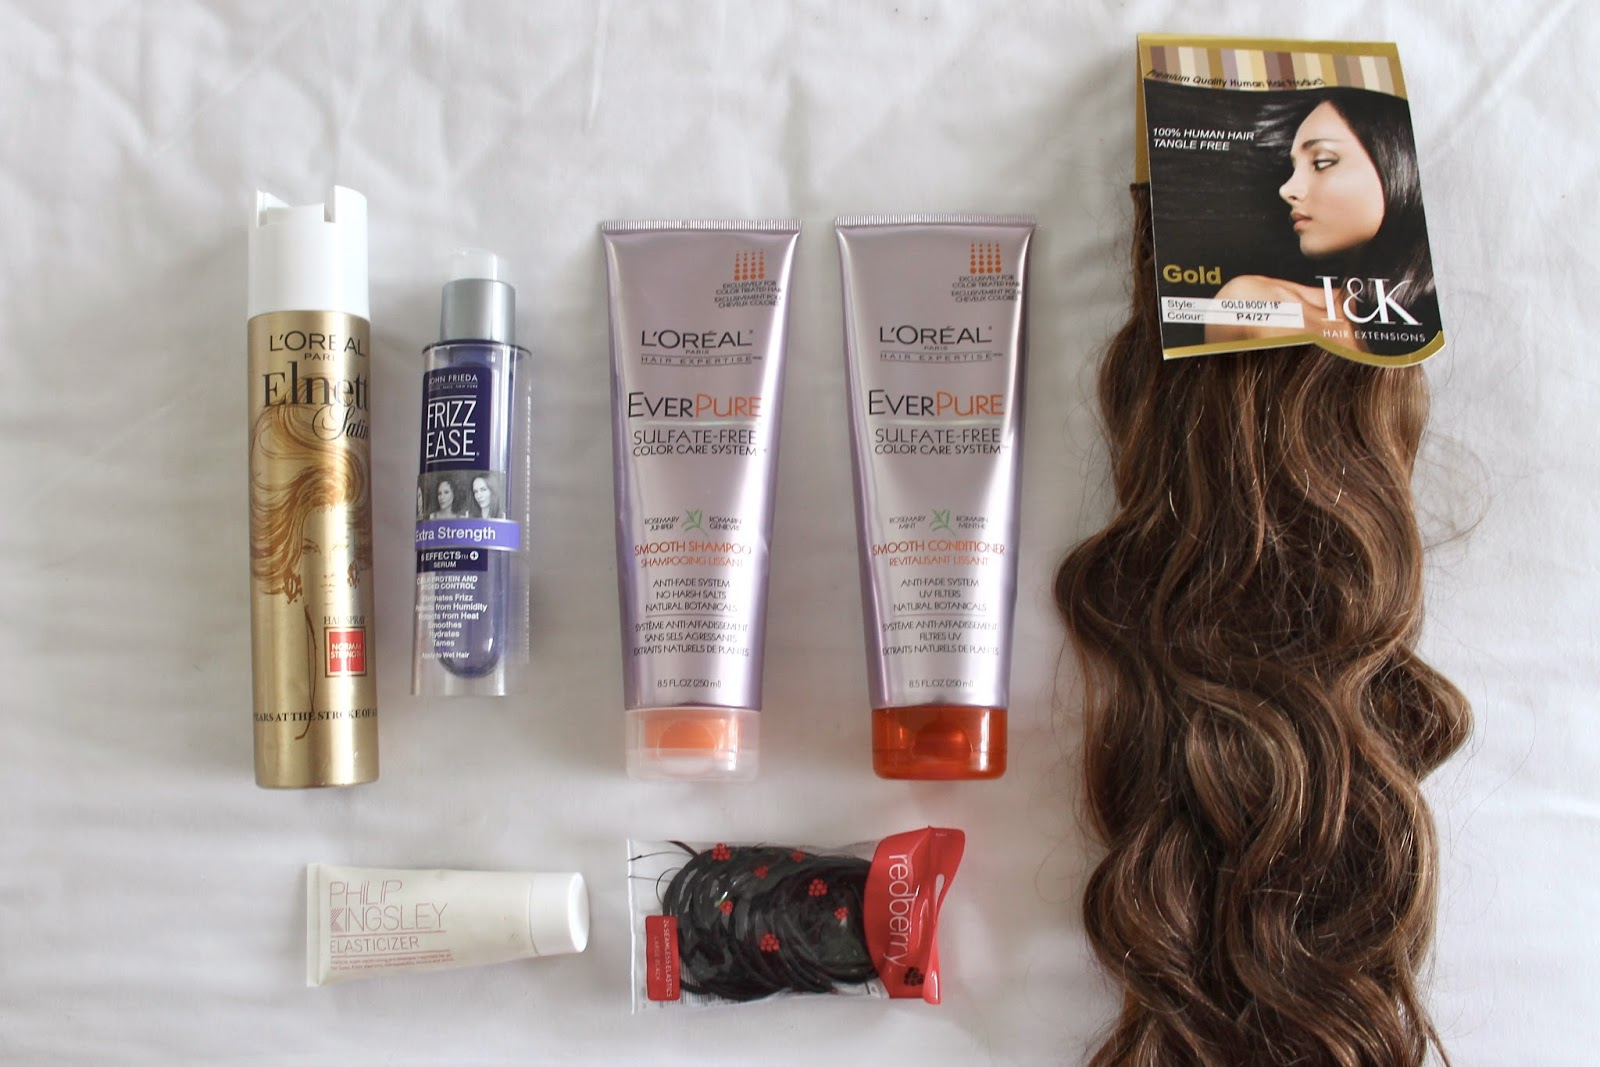 Hair care routine frizz ease hair extensions